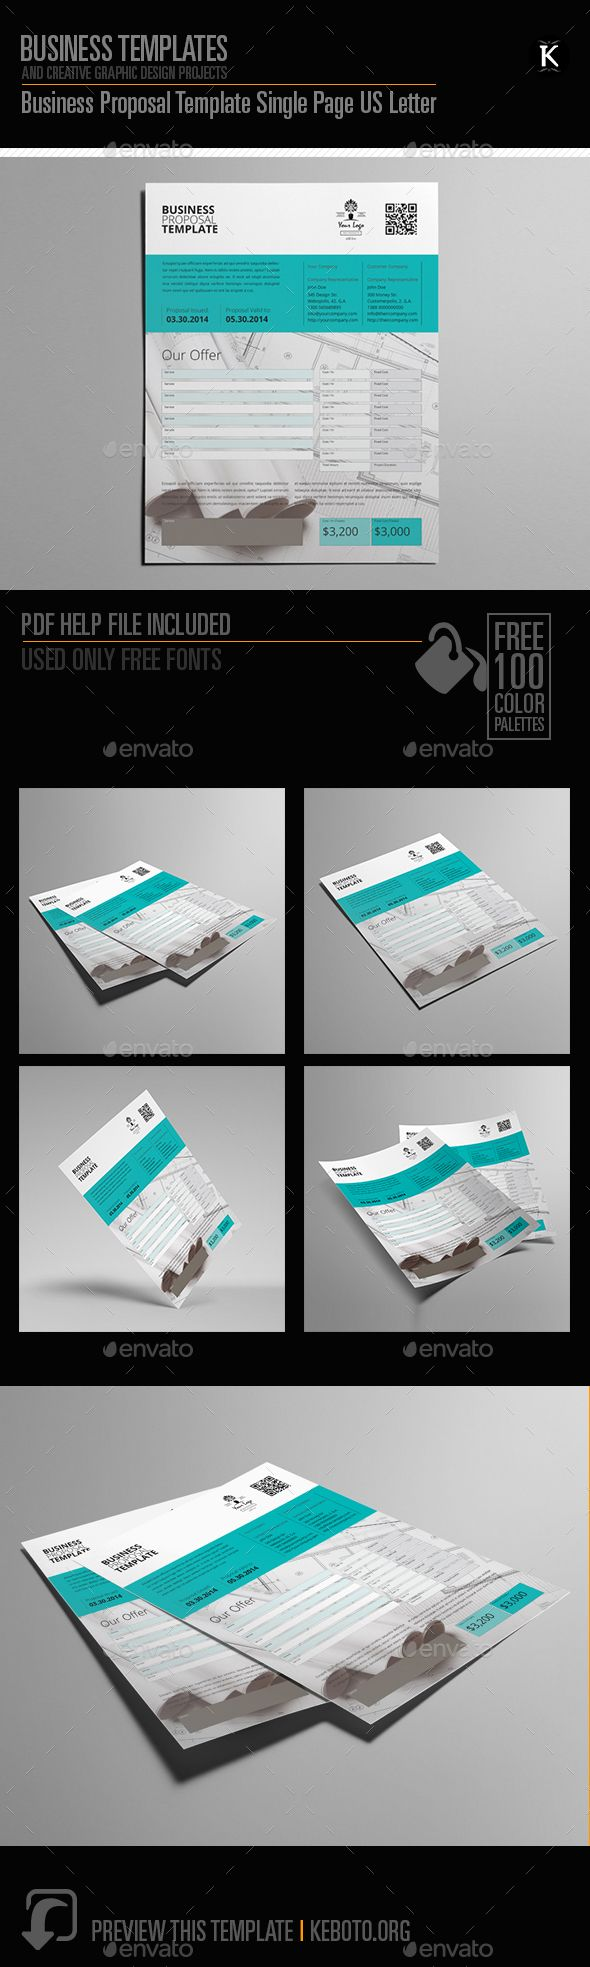 Business Proposal Template Single Page US Letter by Keboto Preview this itemhereBusiness Proposal Template Single Page US LetterSpecifications: Format: U.S. Letter PortraitColor Model: CMYK